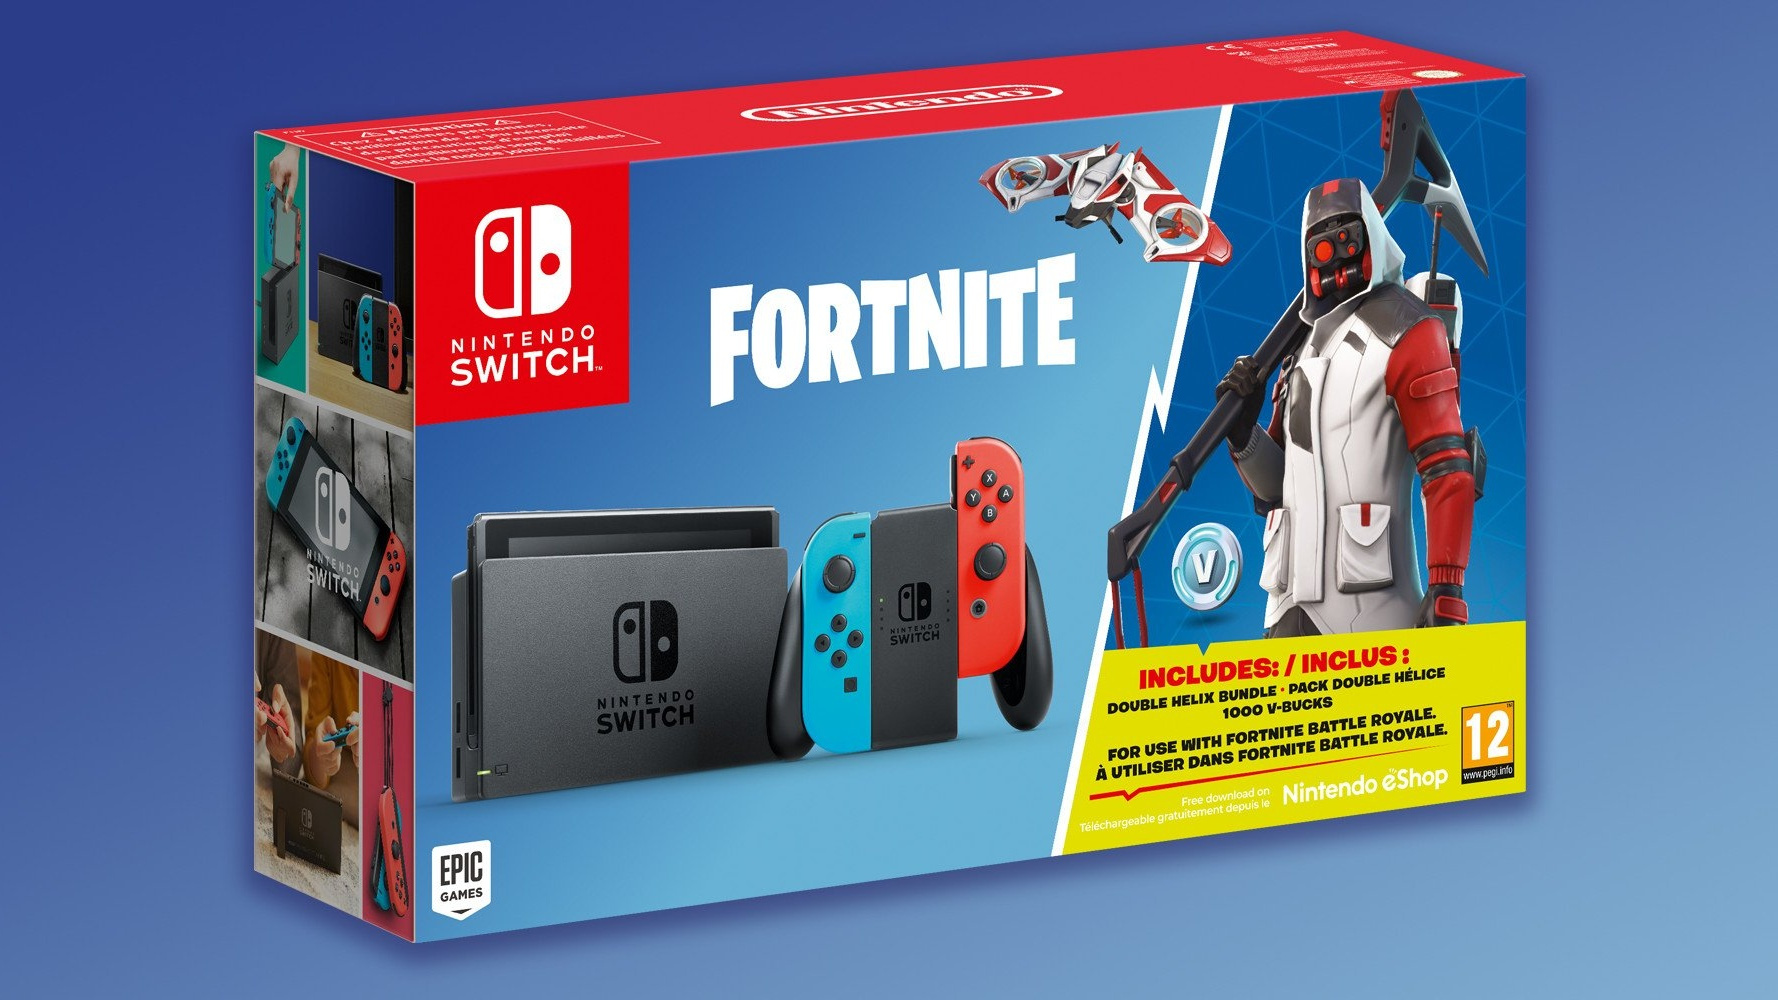 Nintendo Is Releasing A Fortnite Switch Bundle With In Game Currency